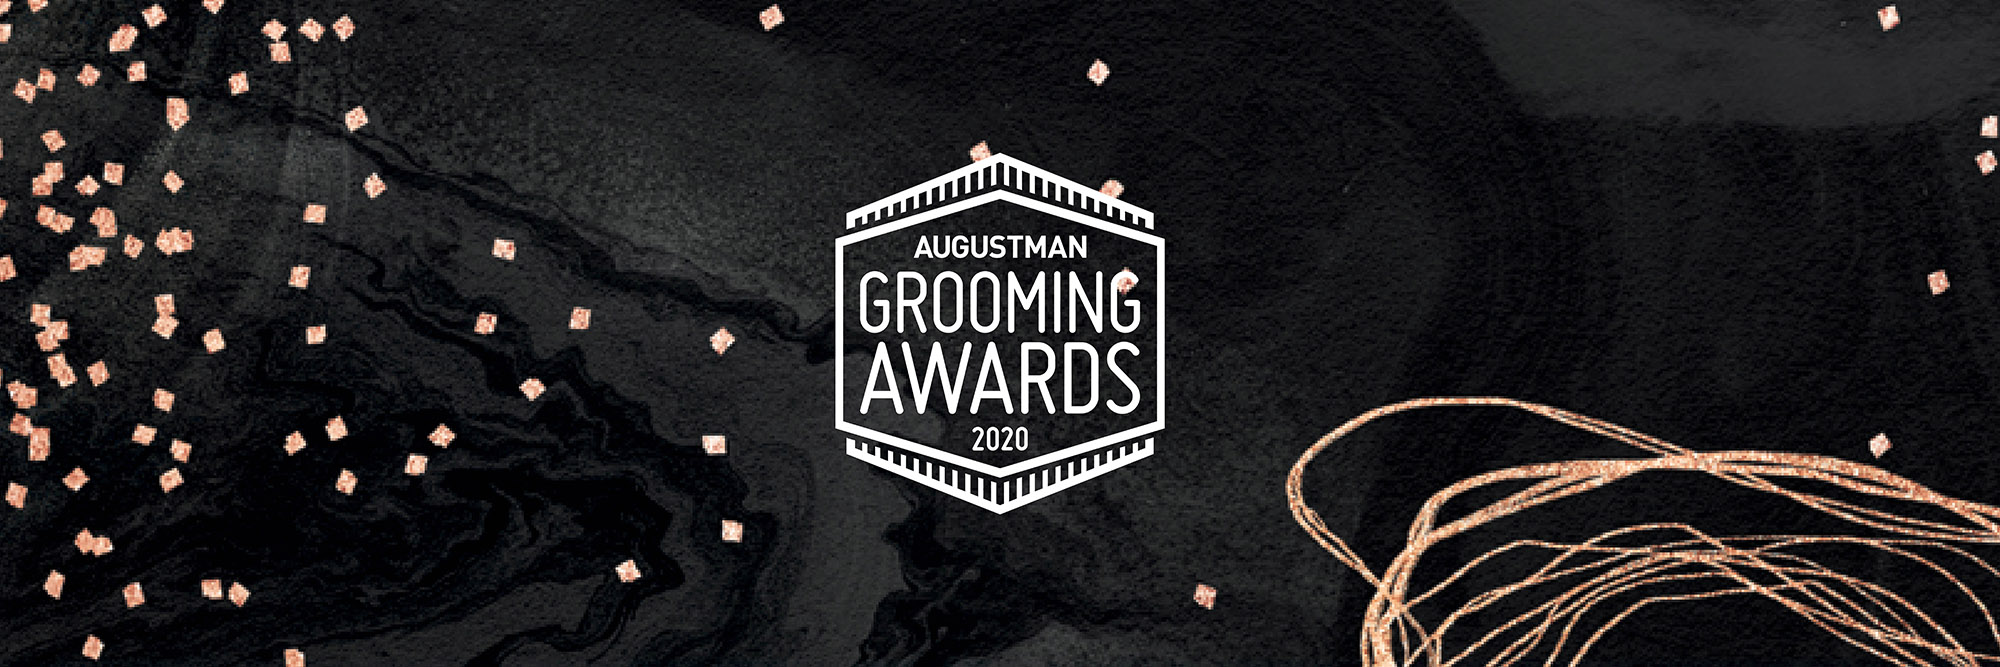 AUGUSTMAN Grooming Awards 2020 Part III: Best Fragrances and Body Products For Gentlemen